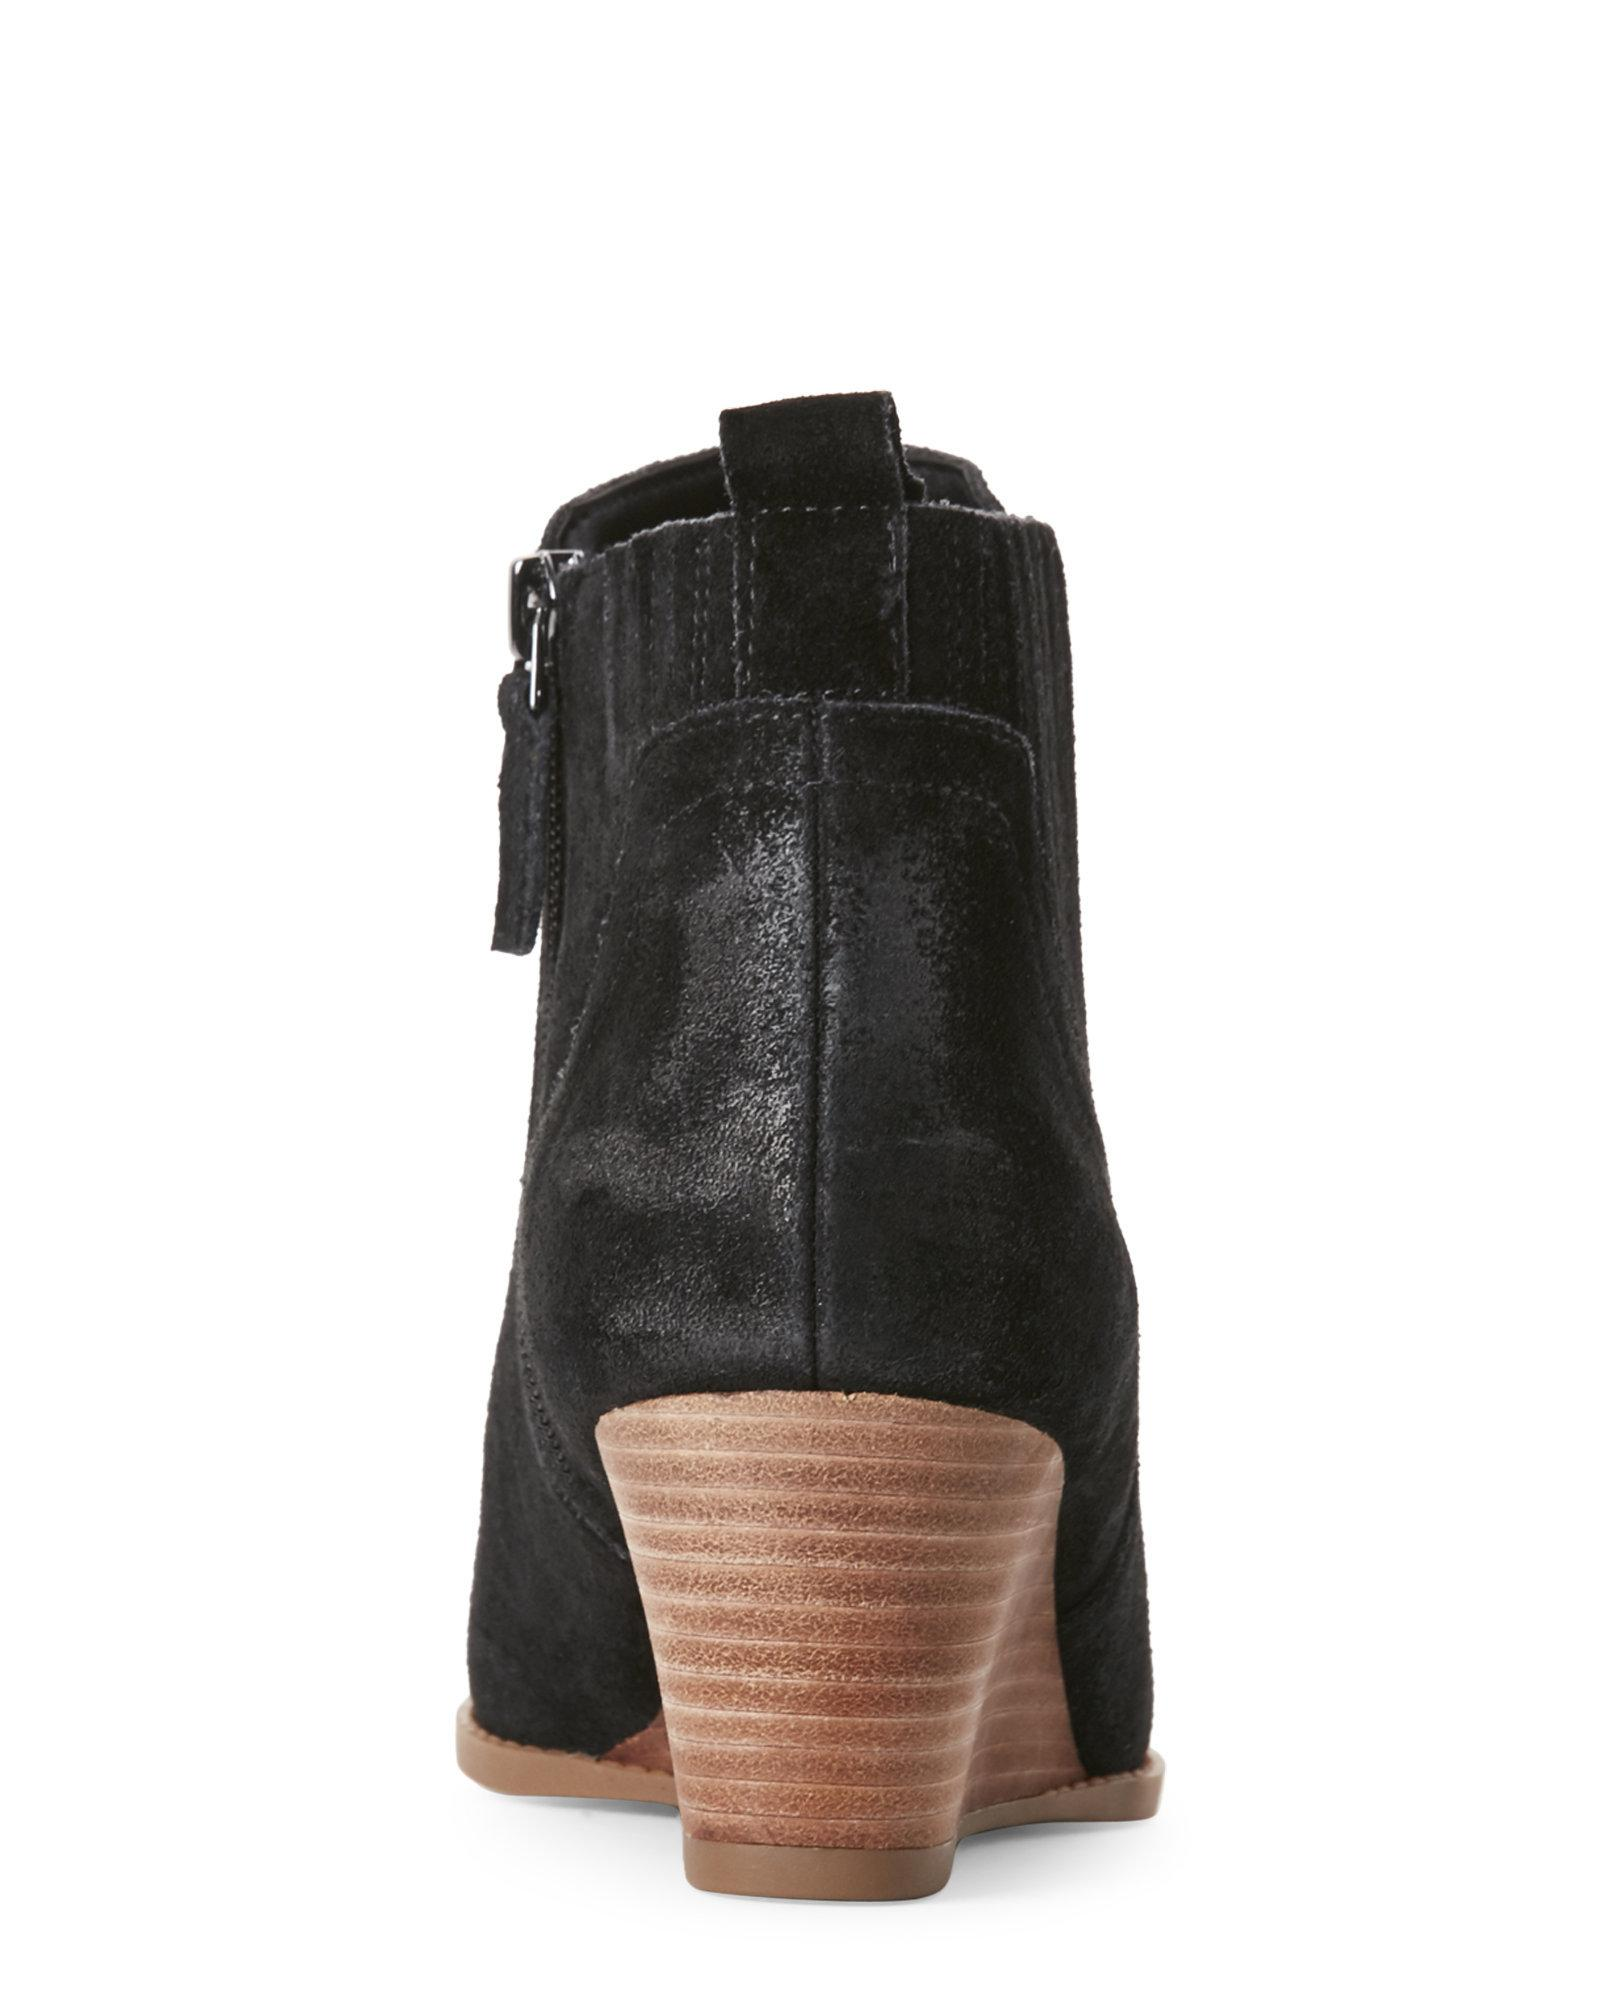 21cd667a190a Lyst - Franco Sarto Black Wayra Wedge Ankle Booties in Black